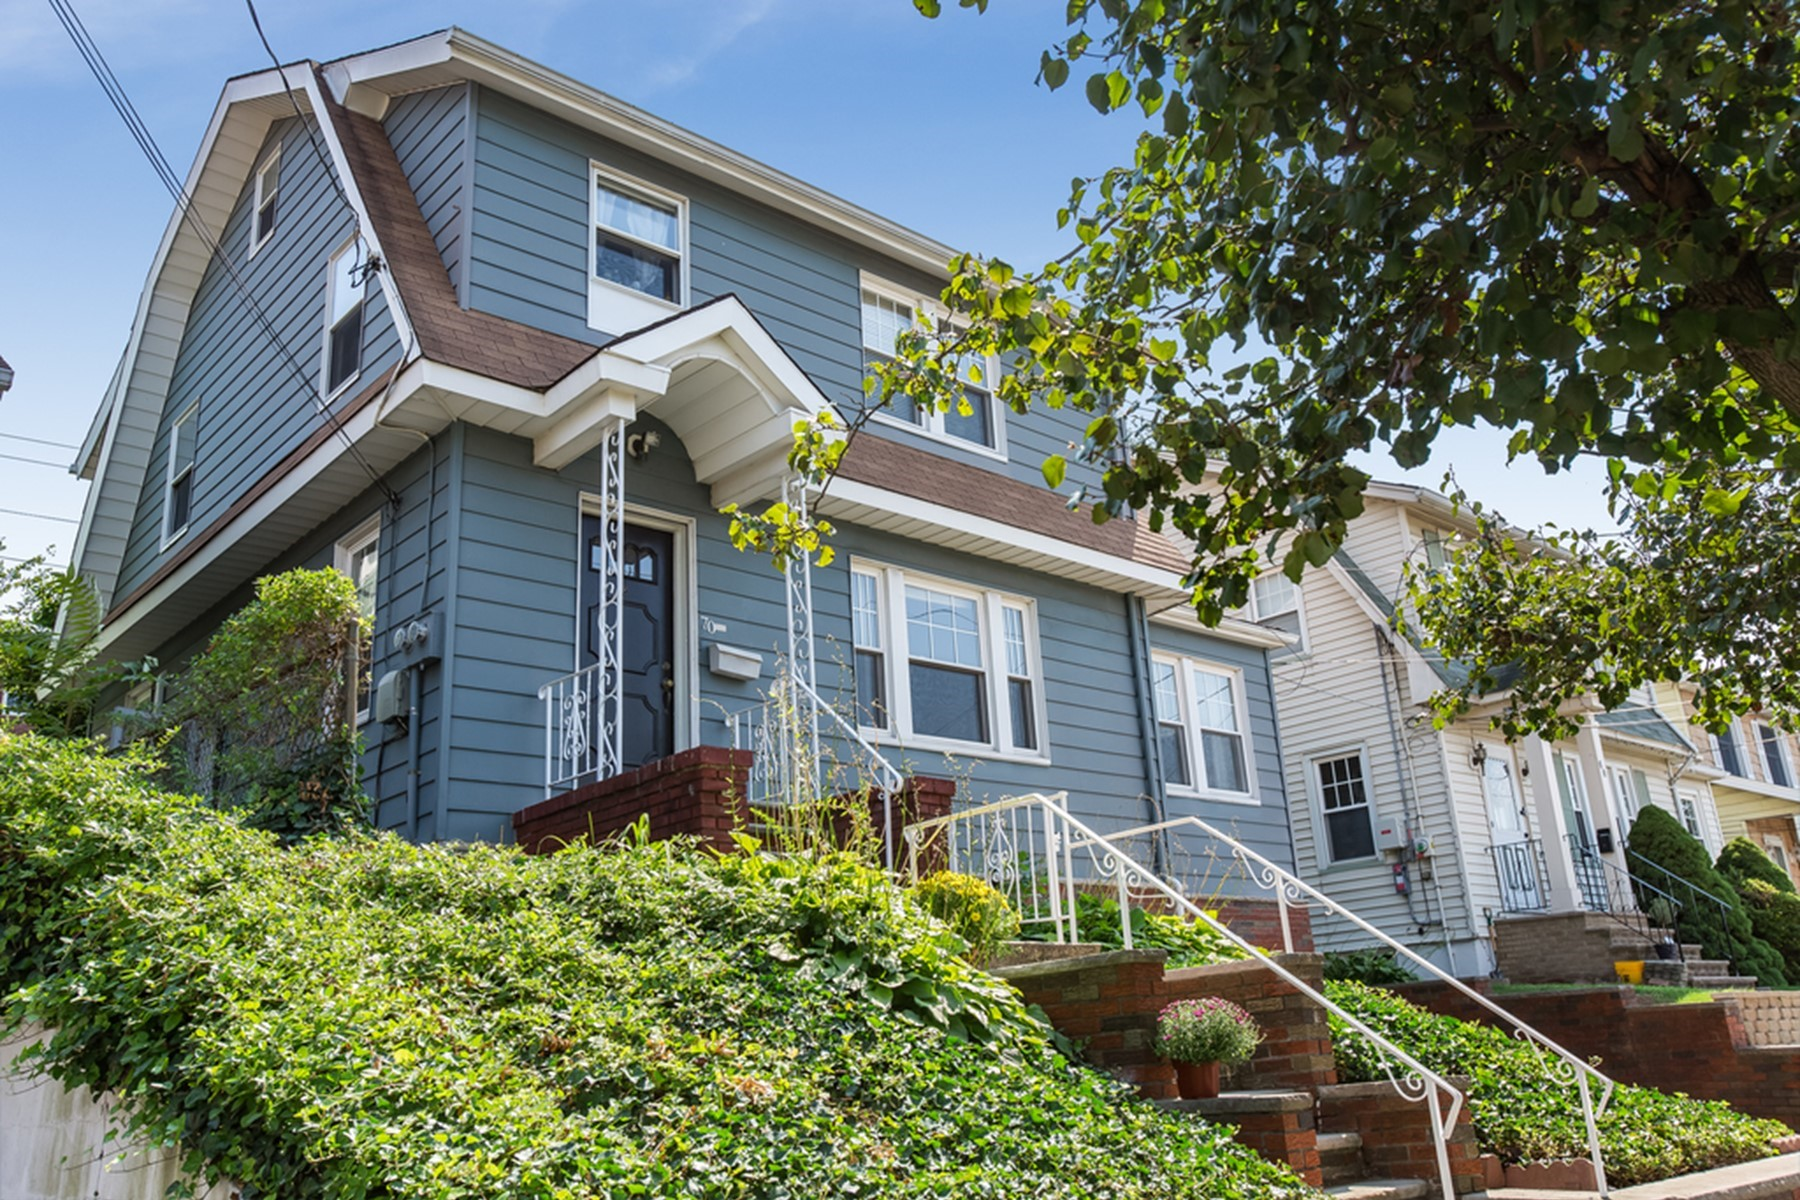 Multi-Family Homes for Sale at Updated Two-Family Colonial 70 Prospect Avenue North Arlington, New Jersey 07031 United States